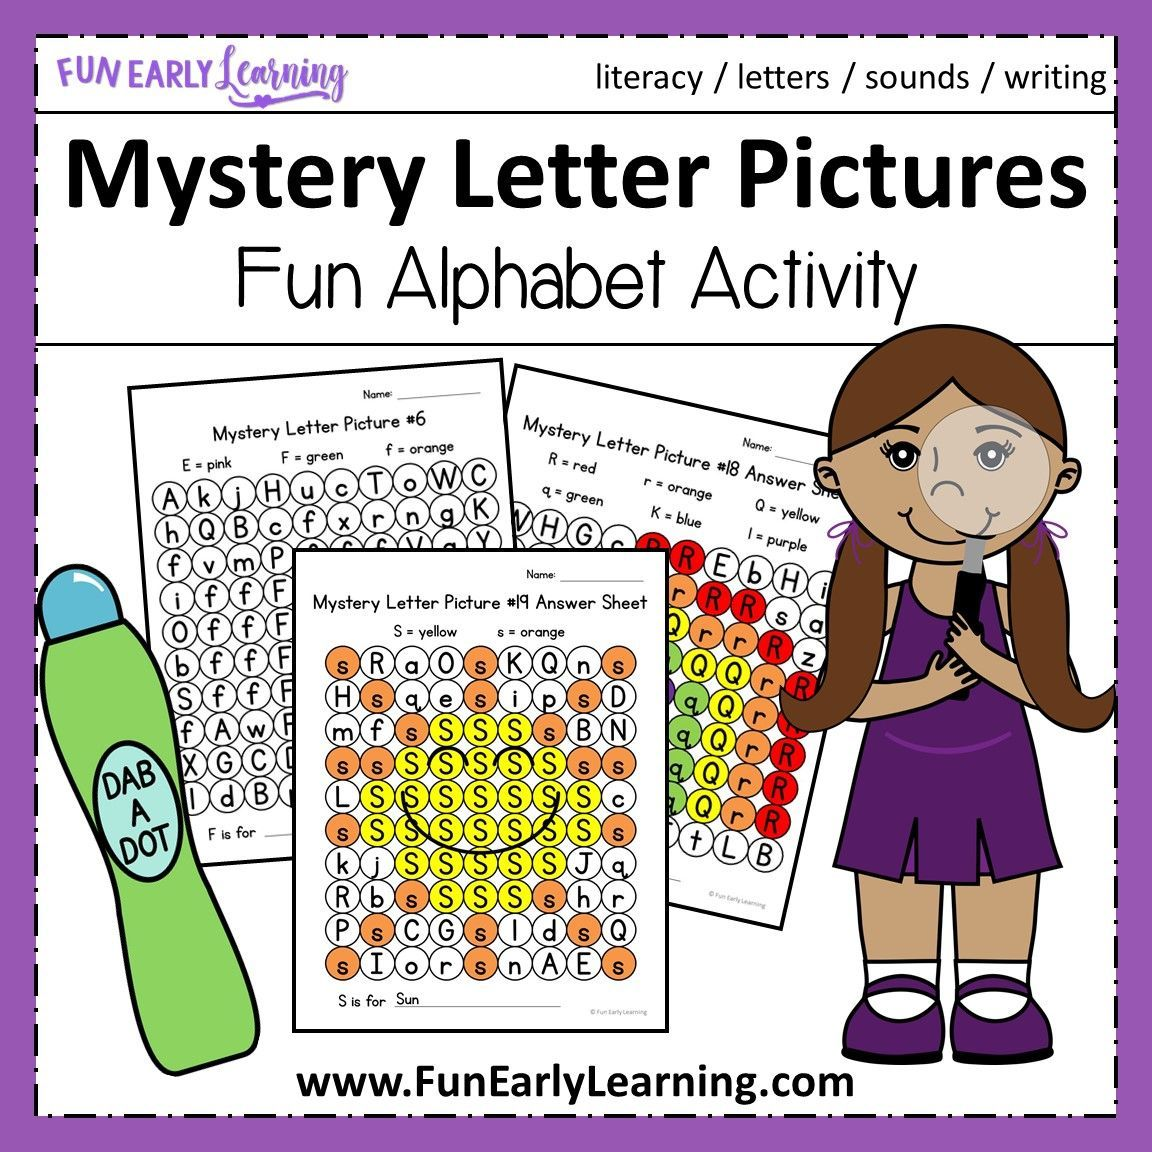 Mystery Letter Pictures Alphabet Activity